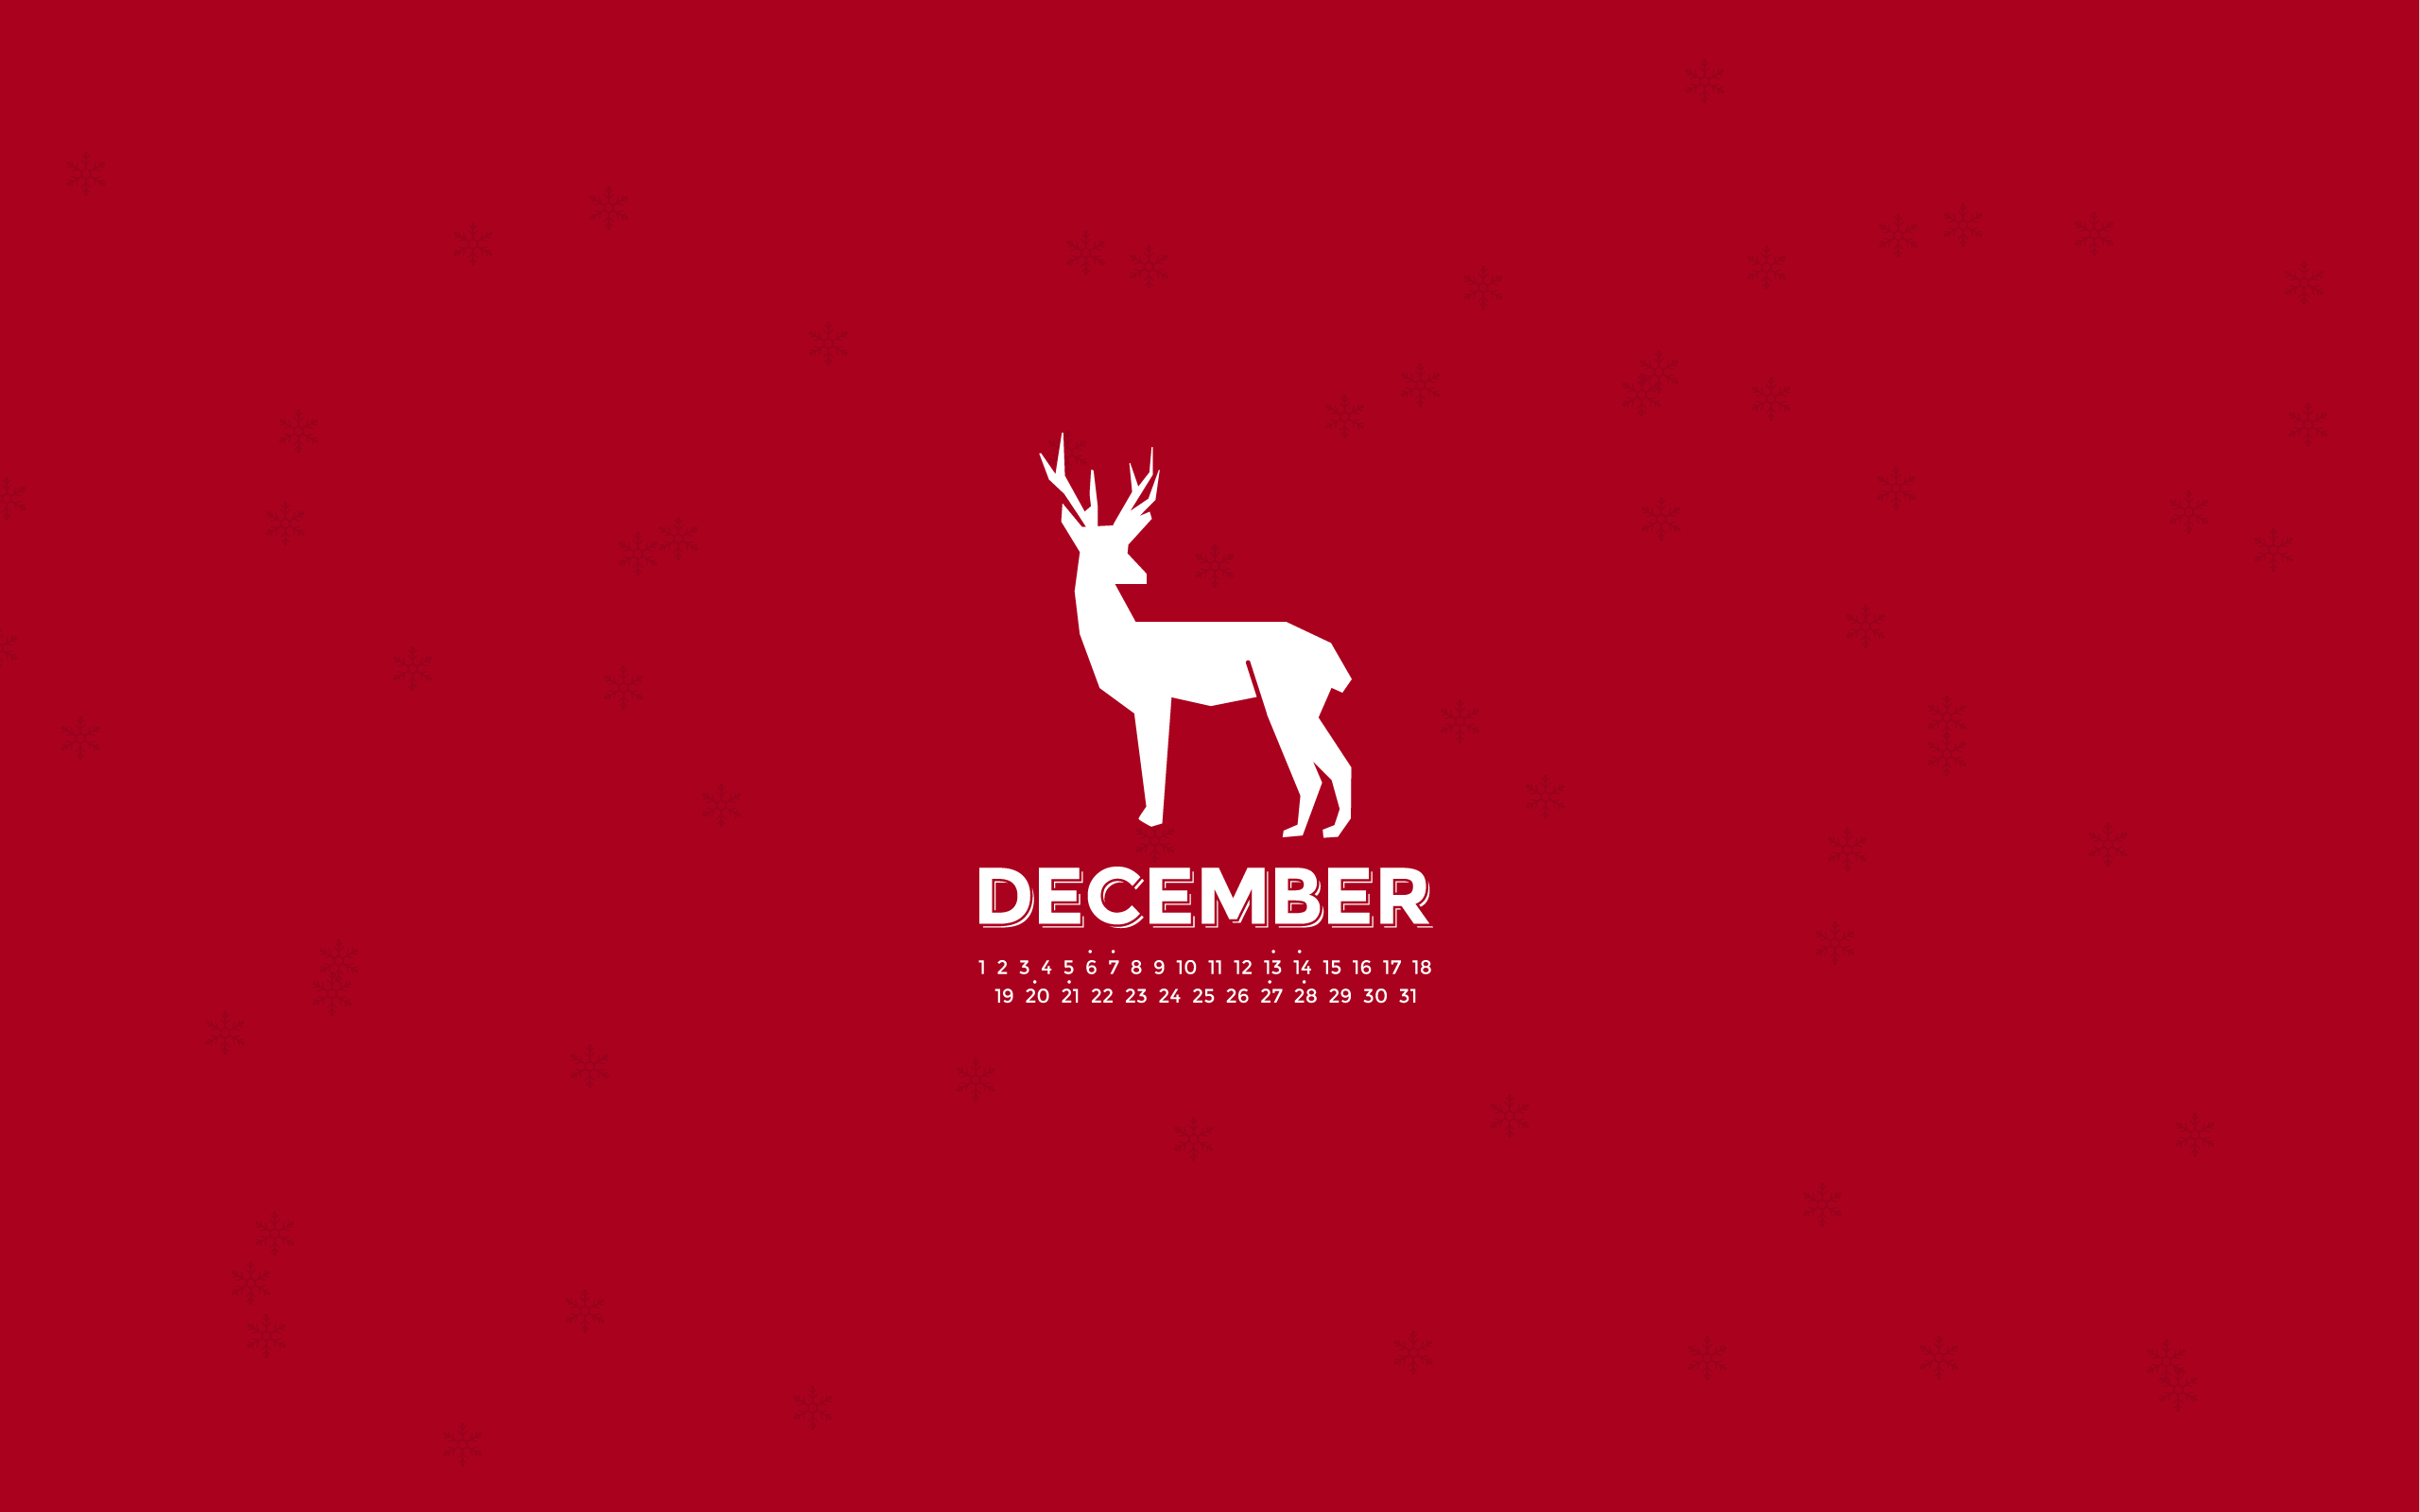 PC 2560x1600 December Wallpaper, BsnSCB Graphics